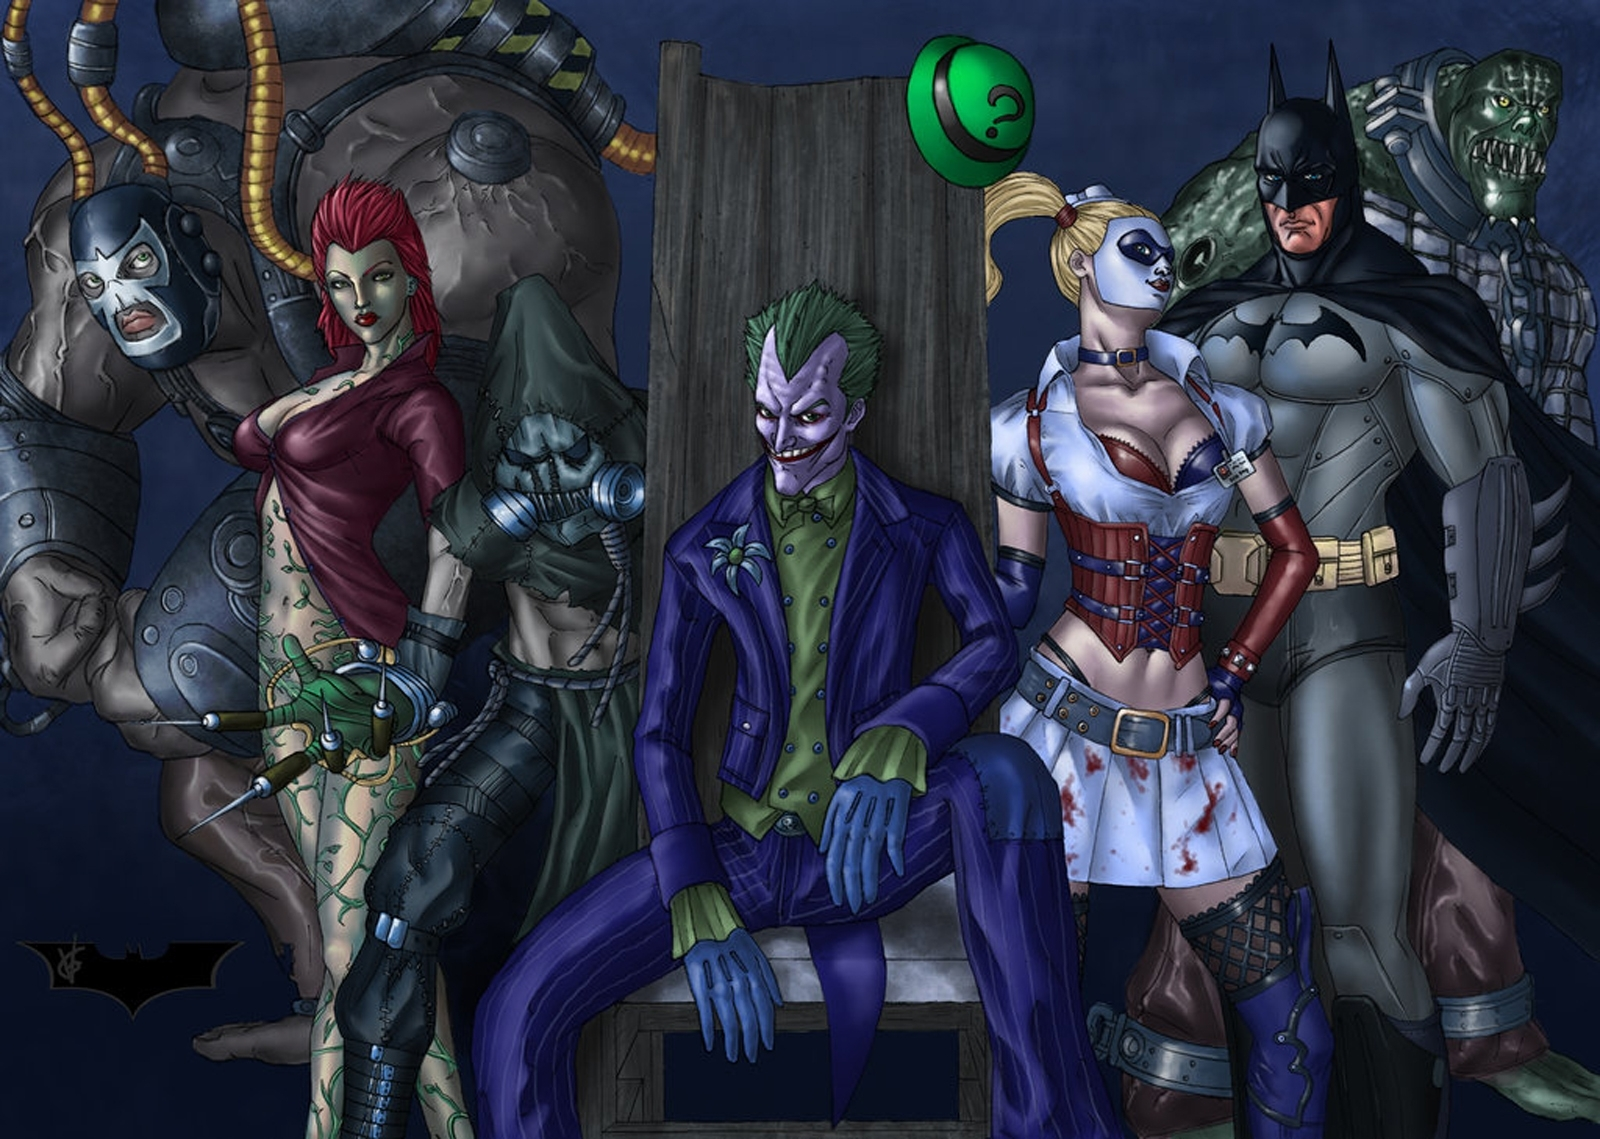 Batman Arkham Asylum Anime Hd 3d Wallpaper 1080p Wallpaper